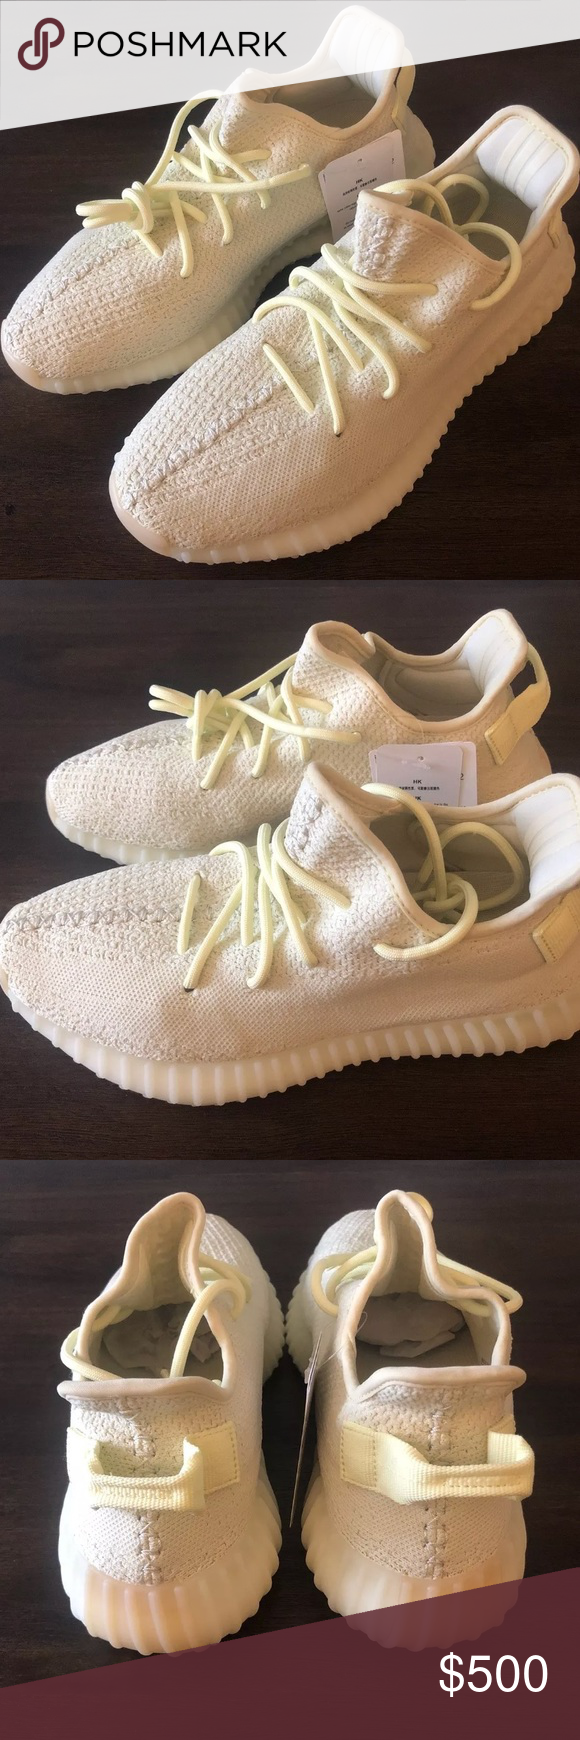 "f76844fe5ad9b Adidas Yeezy Boost 350 V2 ""Butter"" Size 8 Men s size 8"